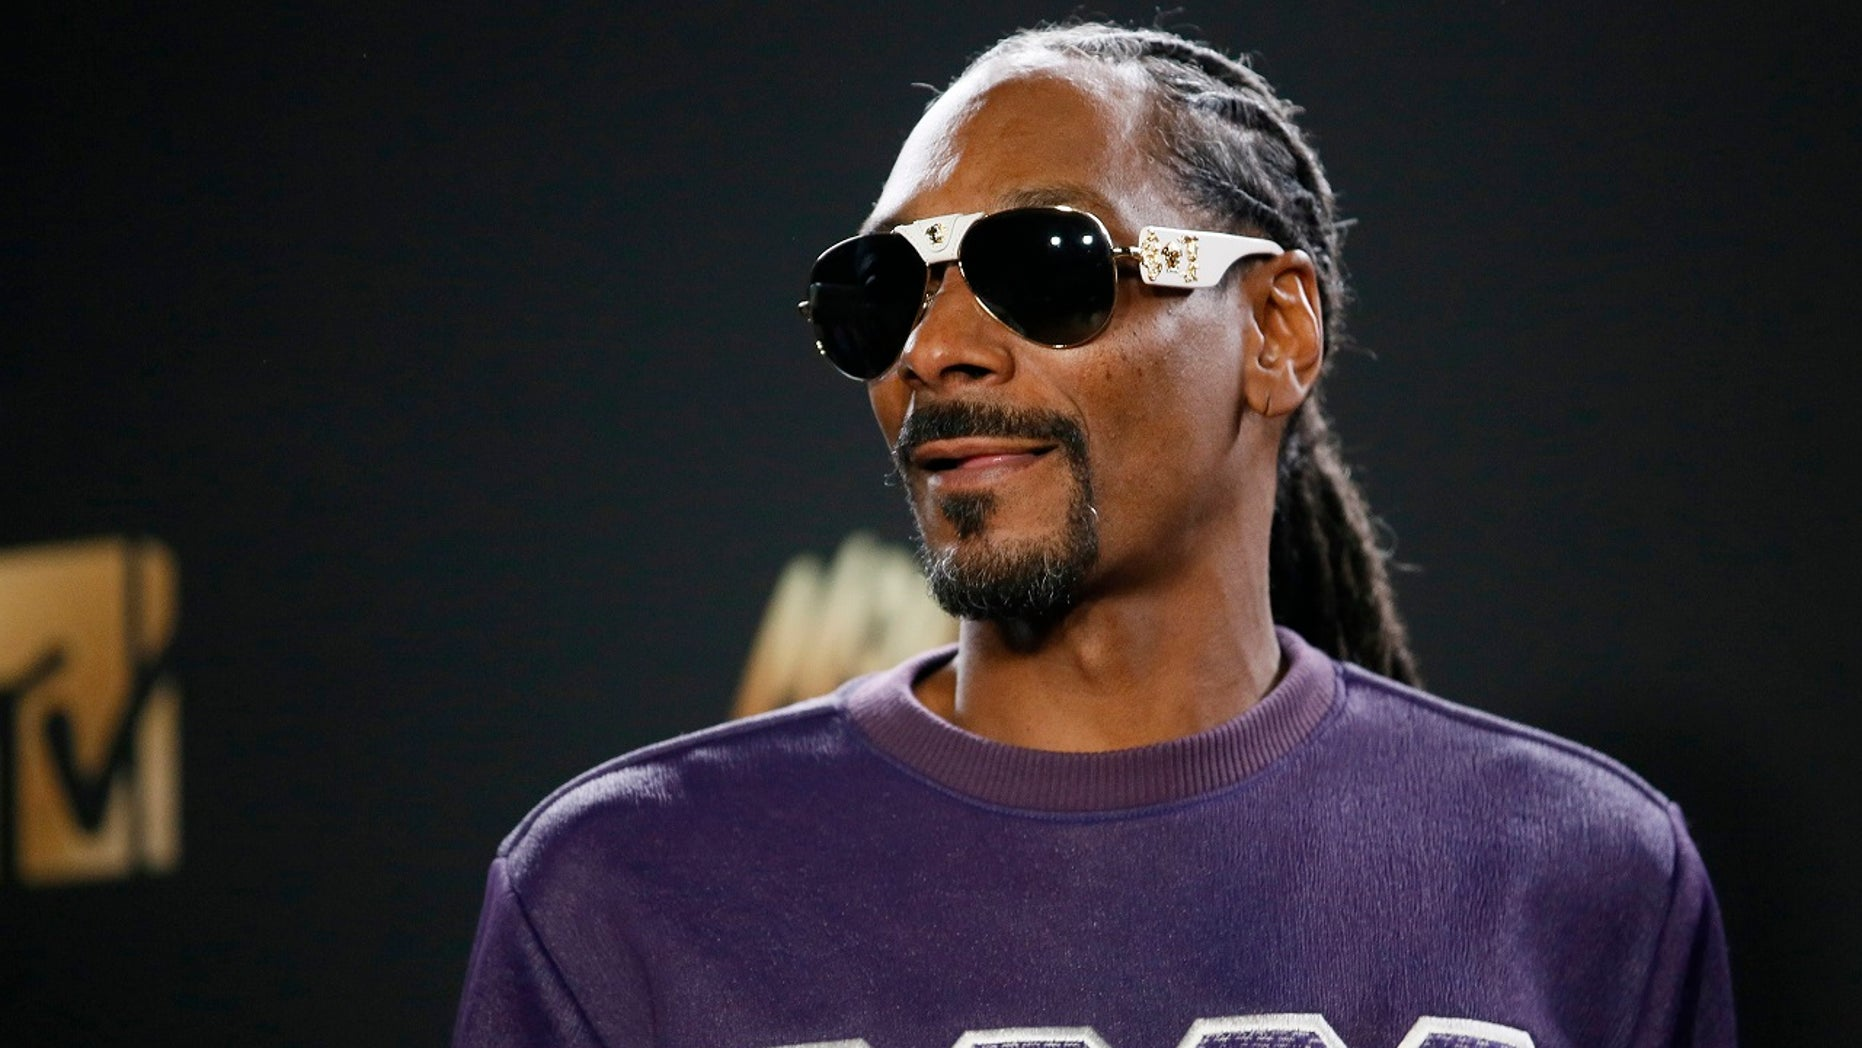 Snoop Dogg Smokes Weed Outside White House Ranting, 'F*ck the President'